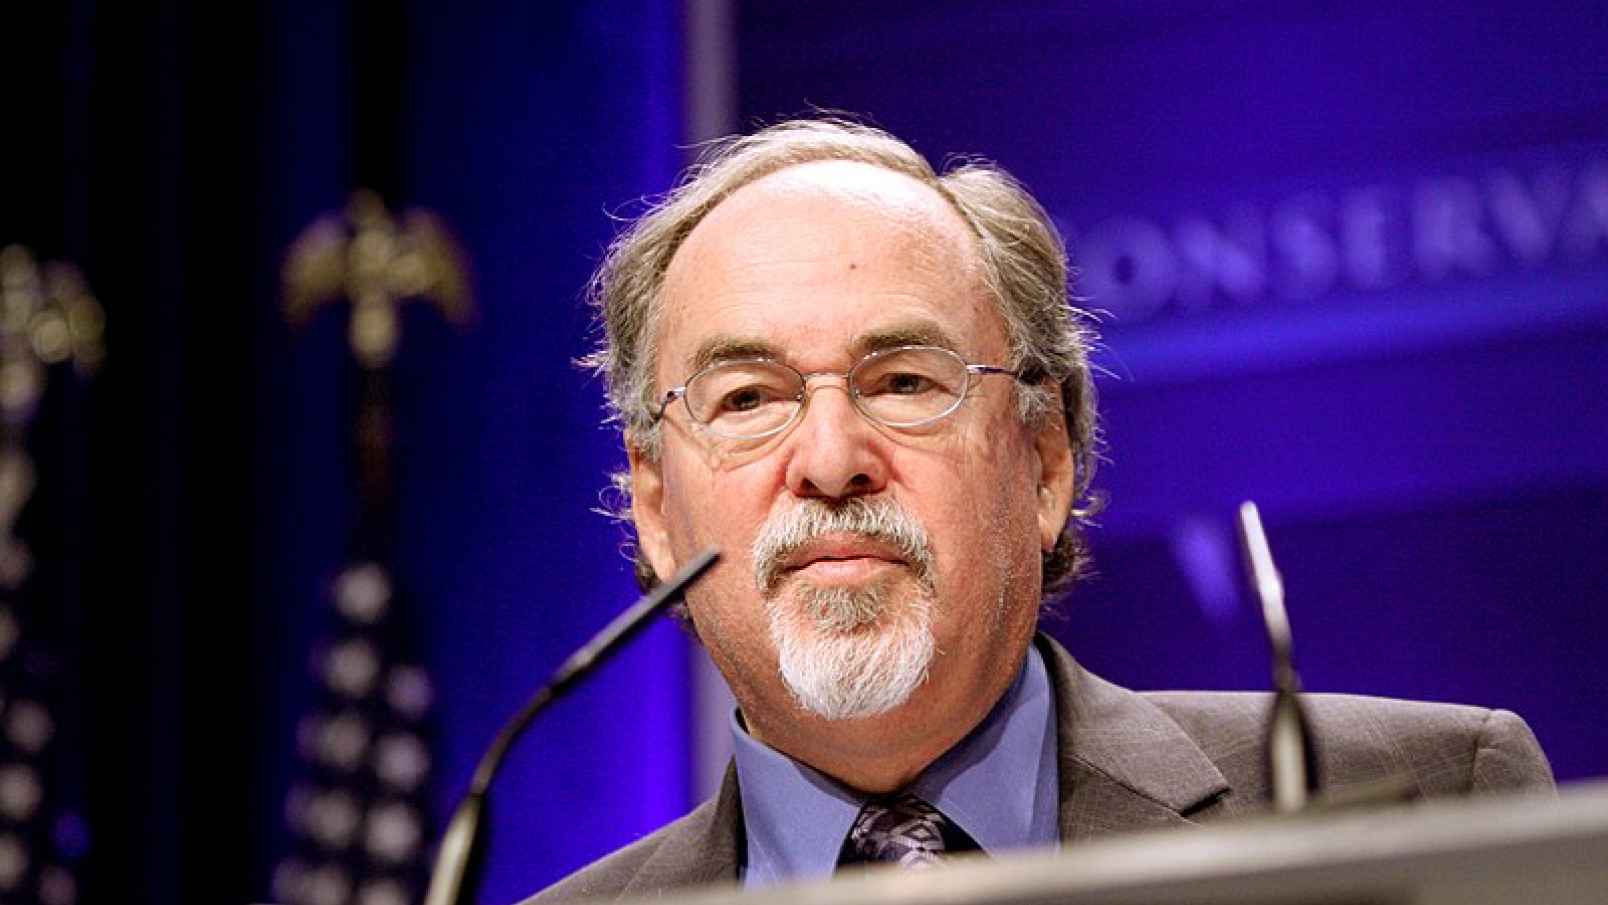 A short conversation with David Horowitz, for FrontPage Magazine